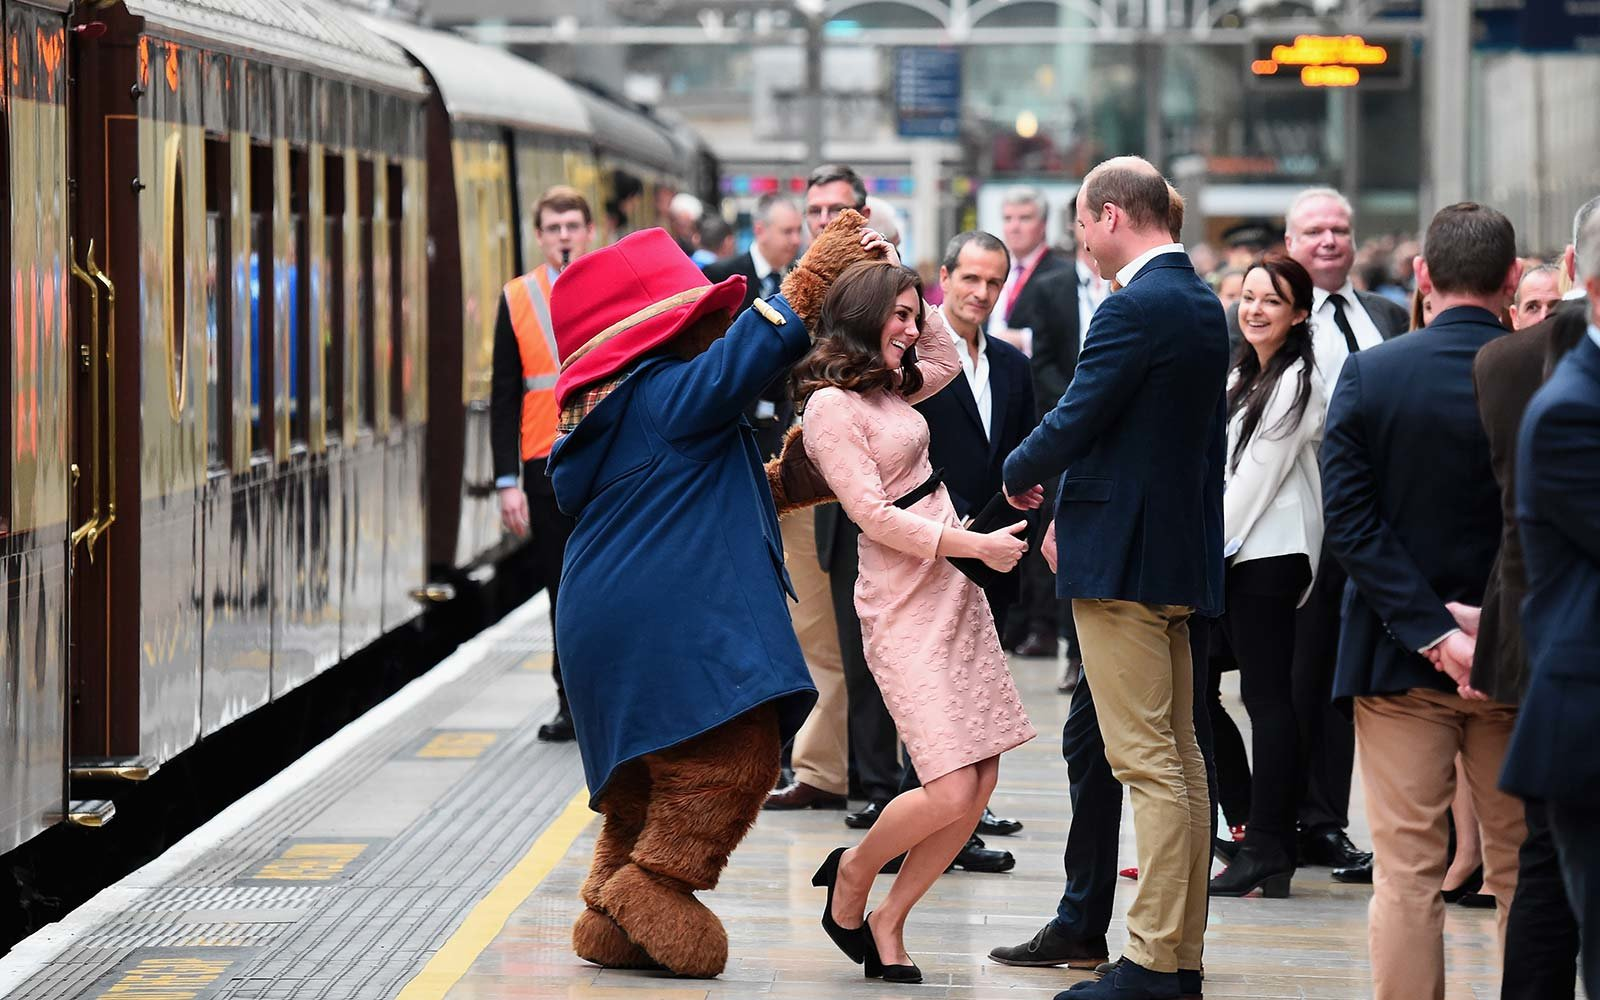 will kate middleton train station uk london